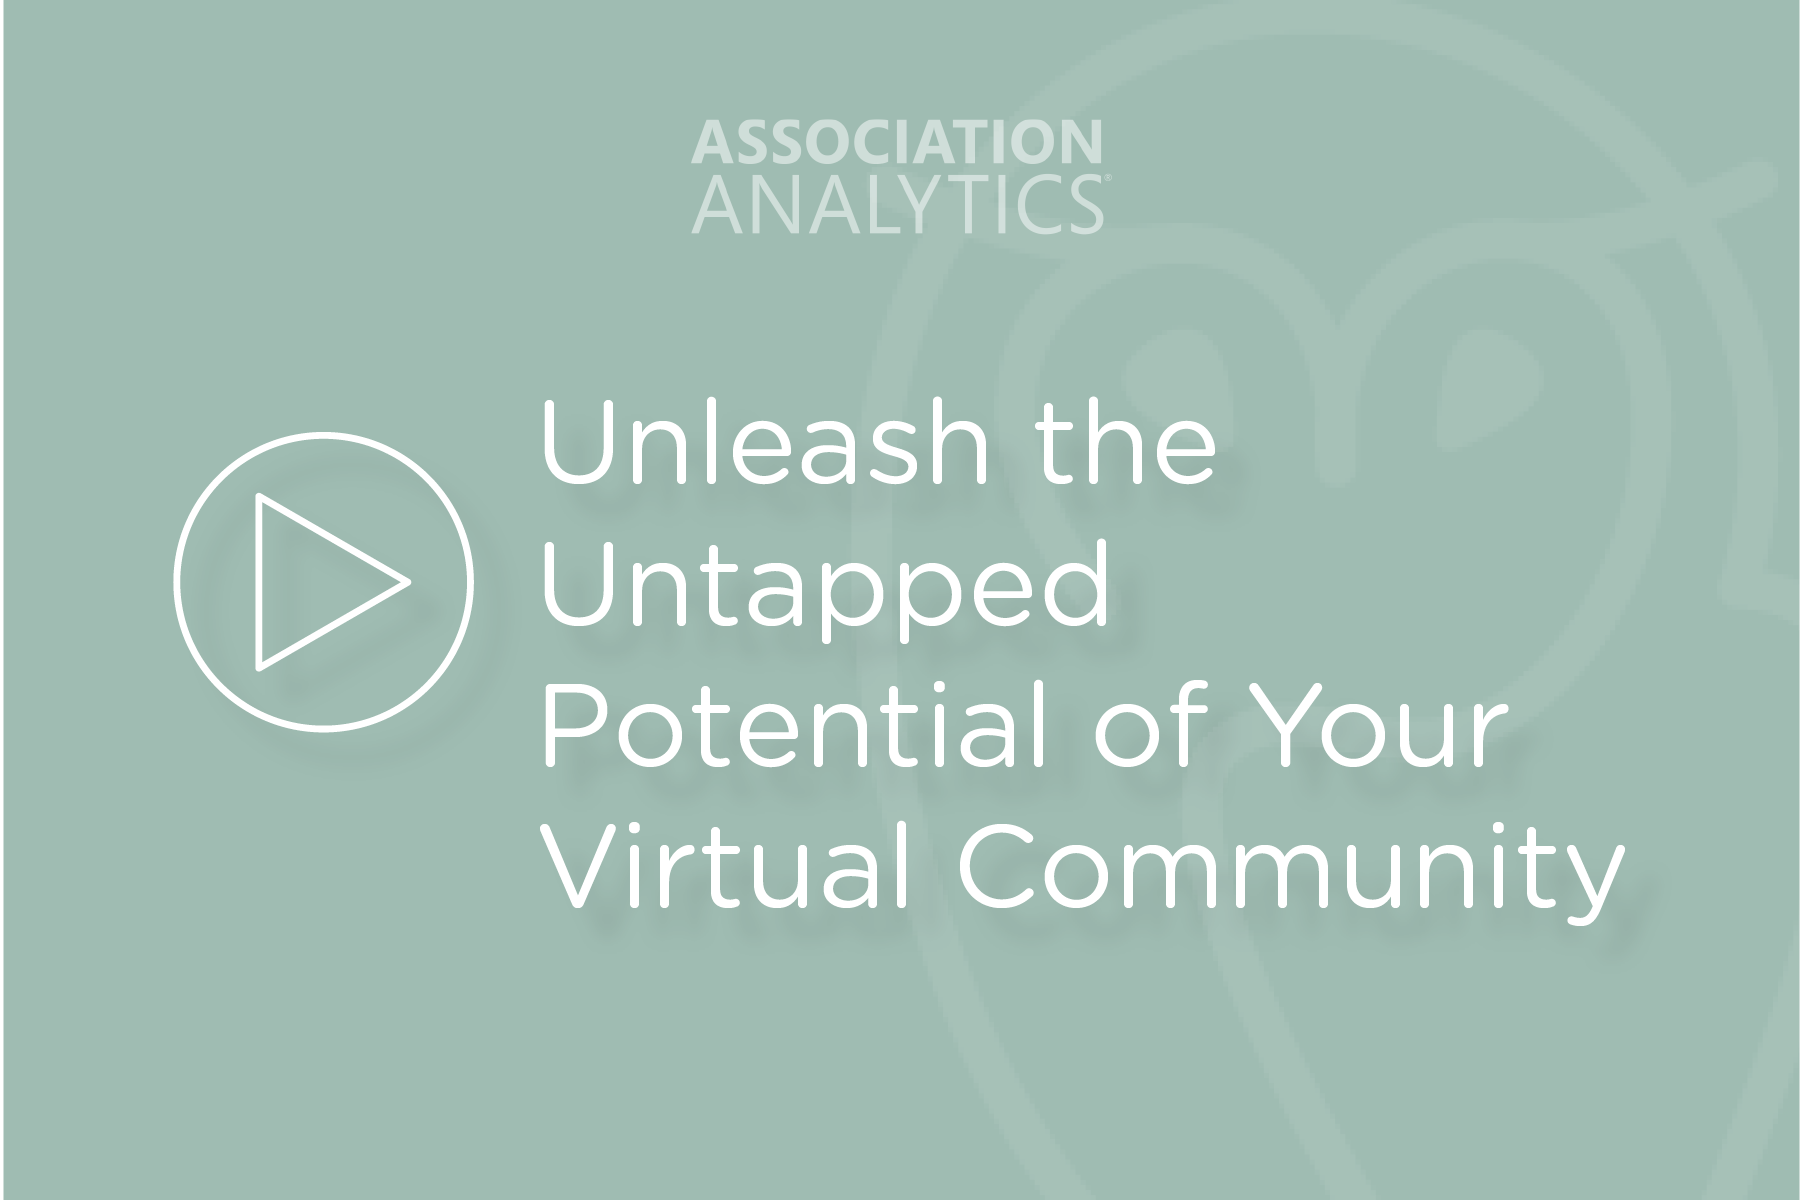 Unleash the Untapped Potential of Your Community